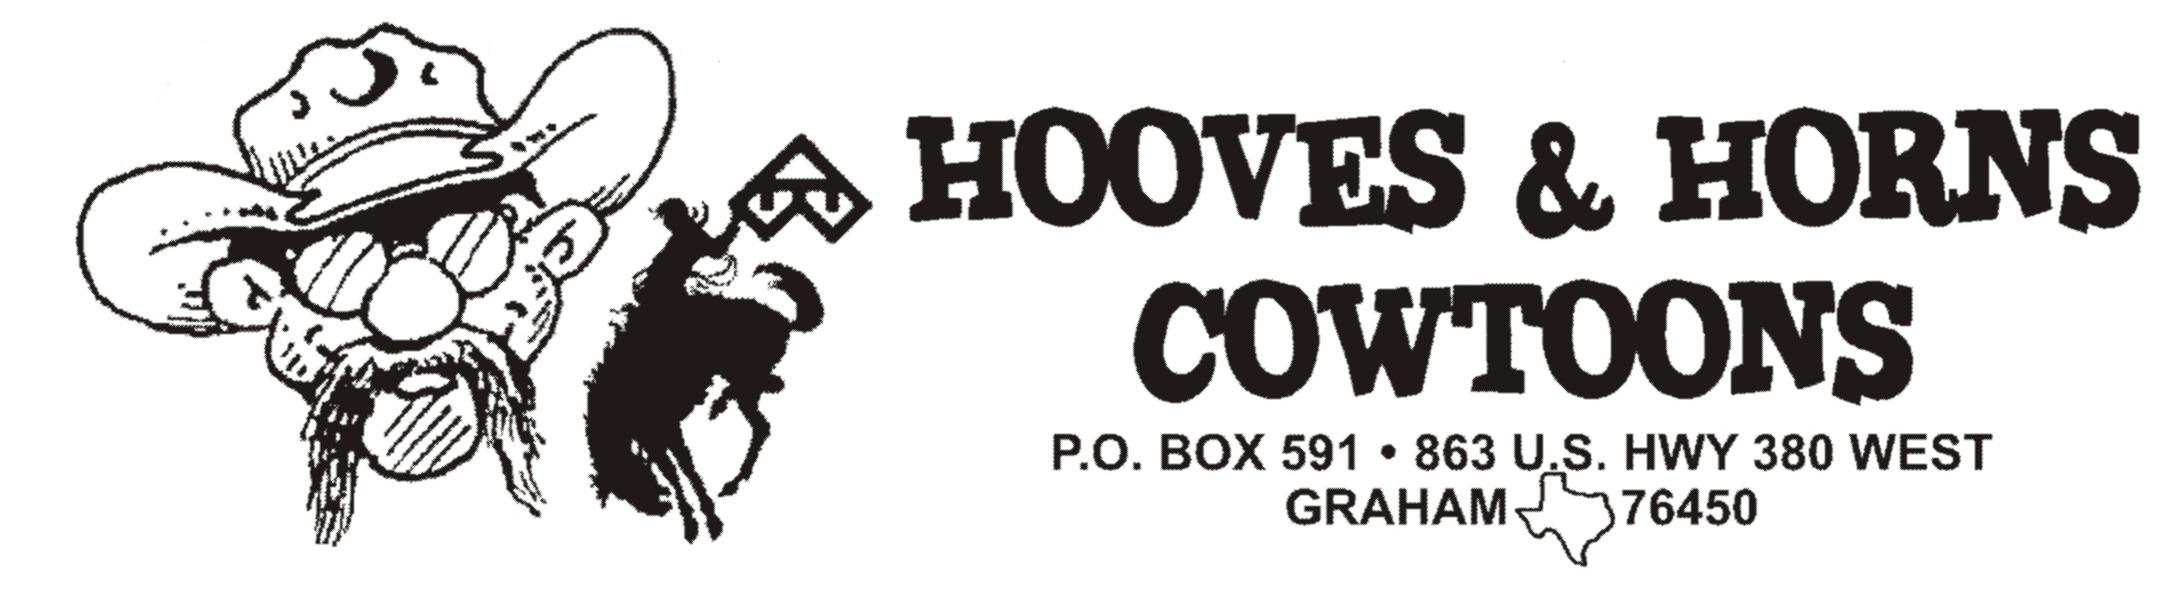 HOOVES & HORNS COWTOONS